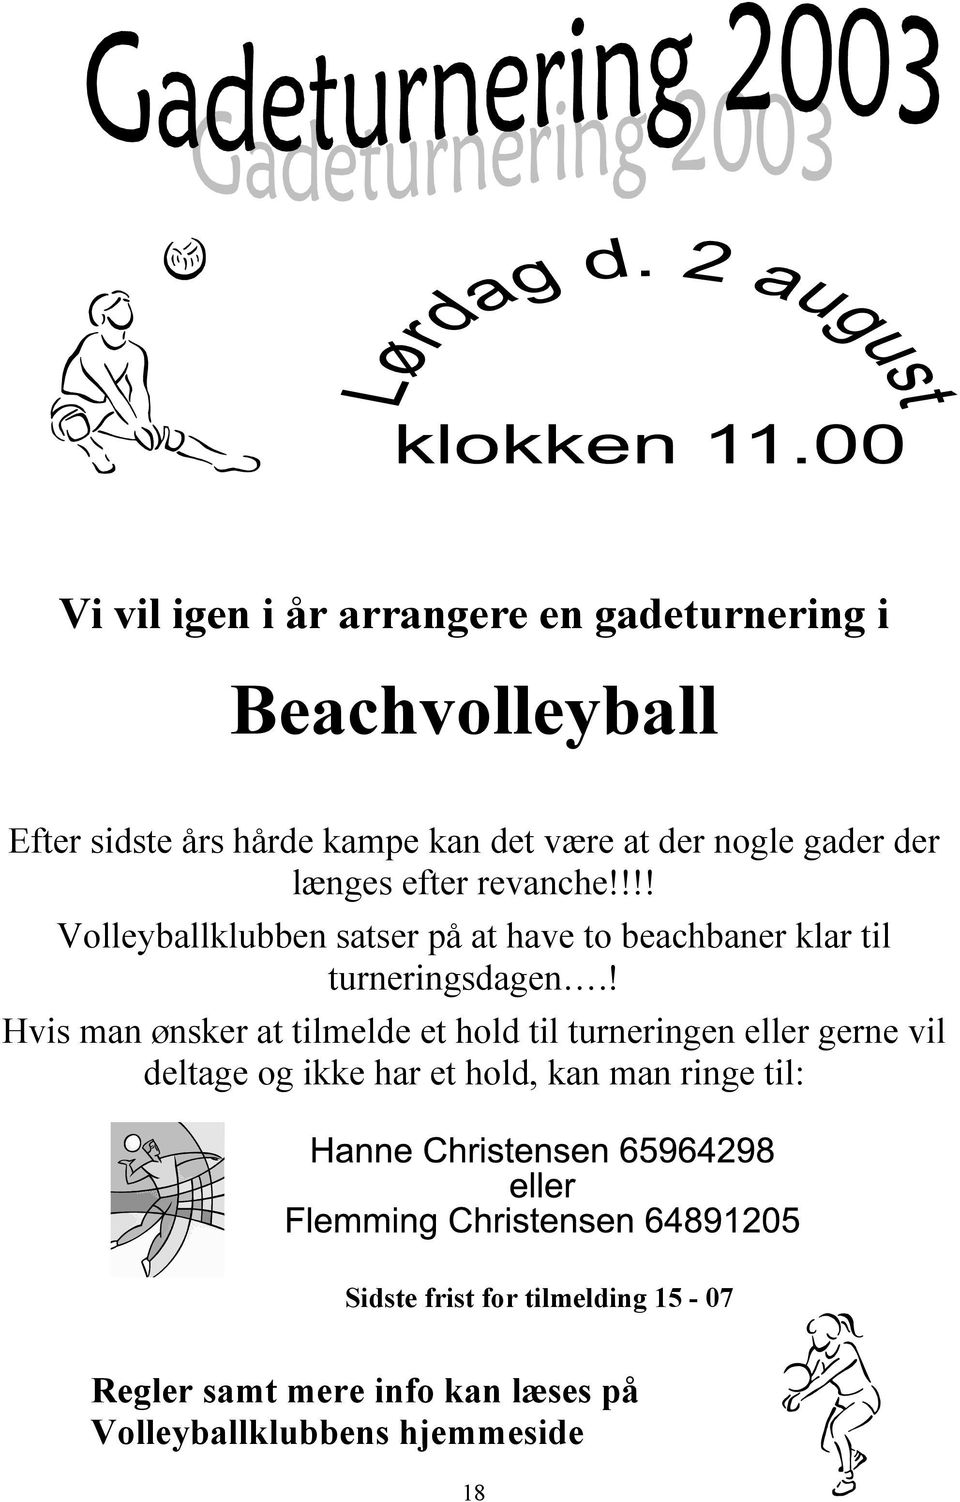 !!! Volleyballklubben satser på at have to beachbaner klar til turneringsdagen.